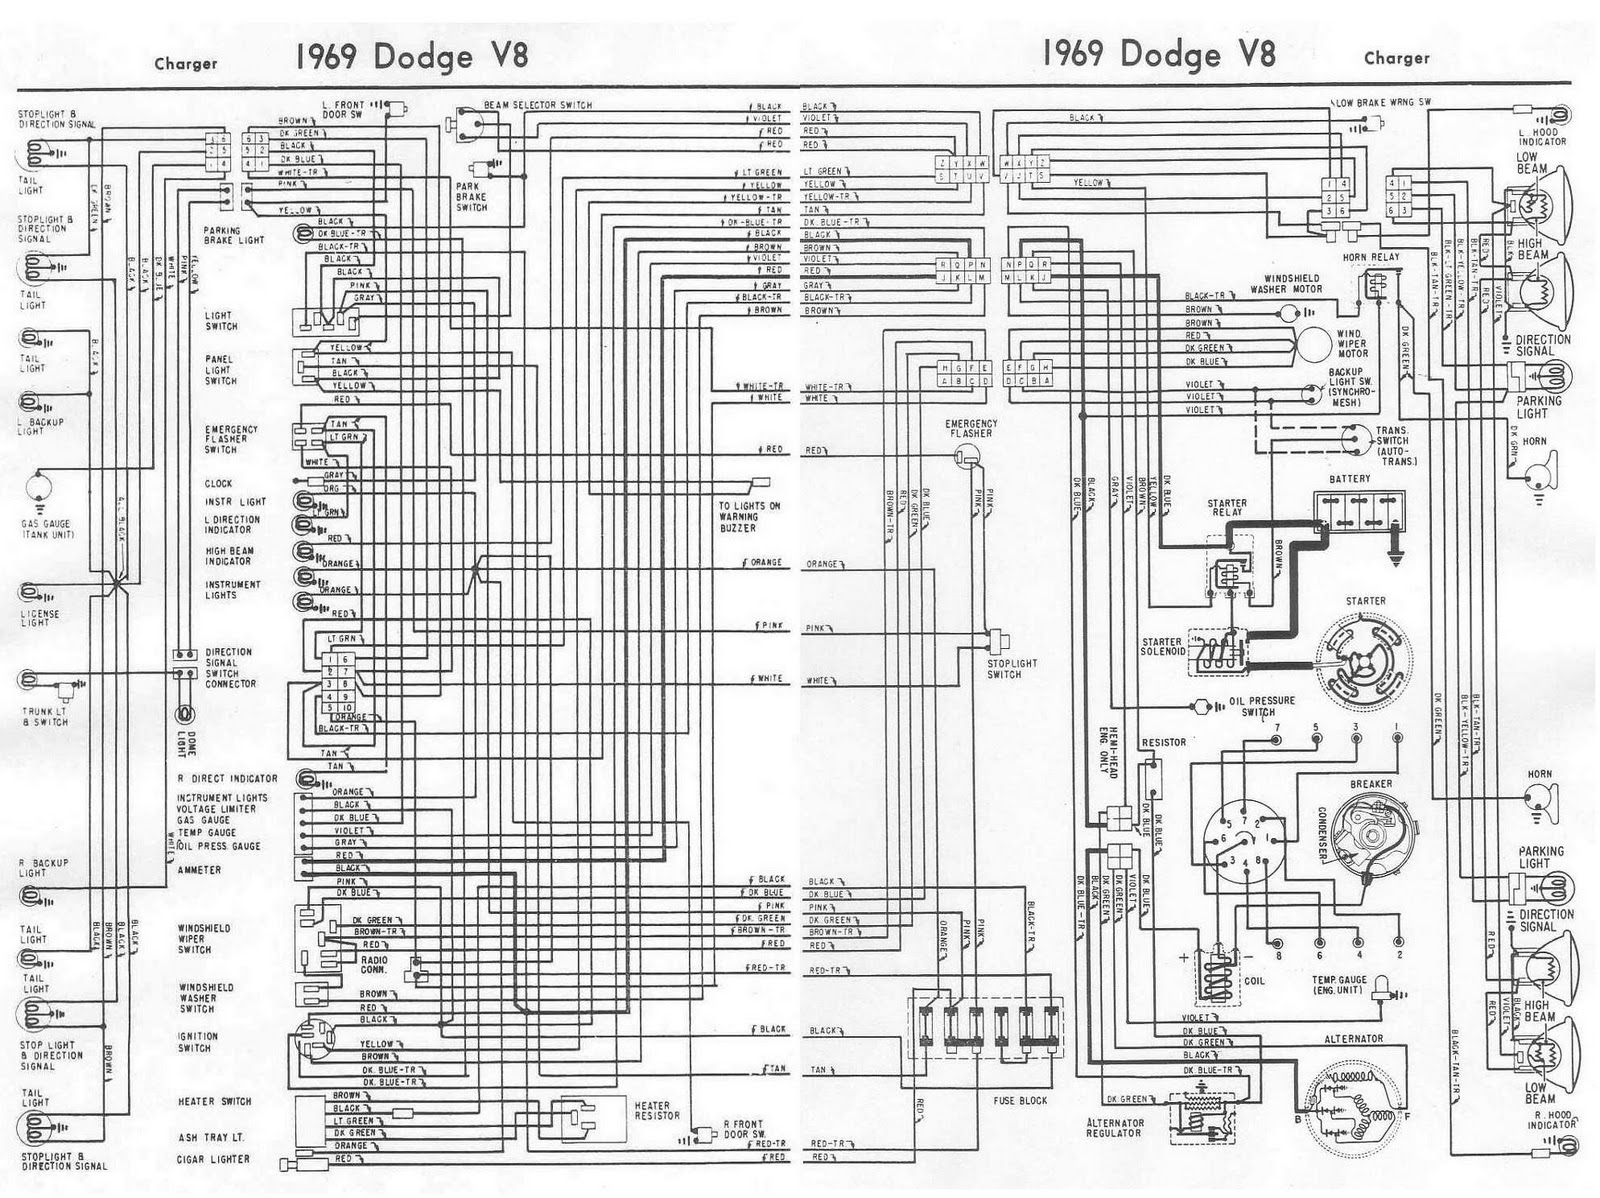 1969+Dodge+Charger+V8+Complete+Wiring+Diagram 2012 mustang wiring diagram 2010 flex wiring diagram \u2022 wiring 1970 Dodge Challenger Wiring-Diagram at edmiracle.co